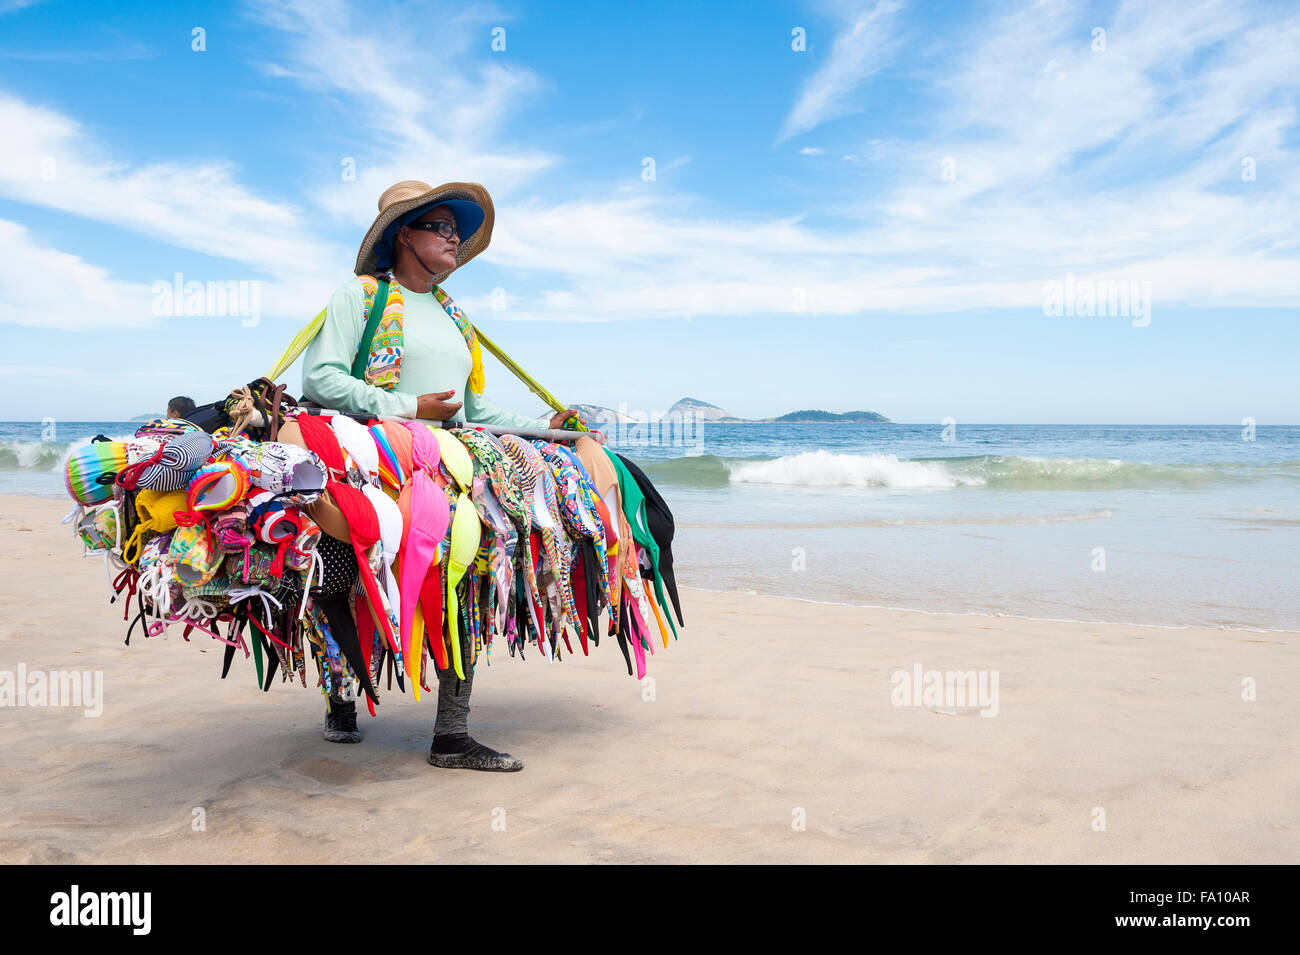 RIO DE JANEIRO, BRAZIL - MARCH 15, 2015: A beach vendor selling bikinis carries her merchandise along Ipanema Beach. - Stock Image